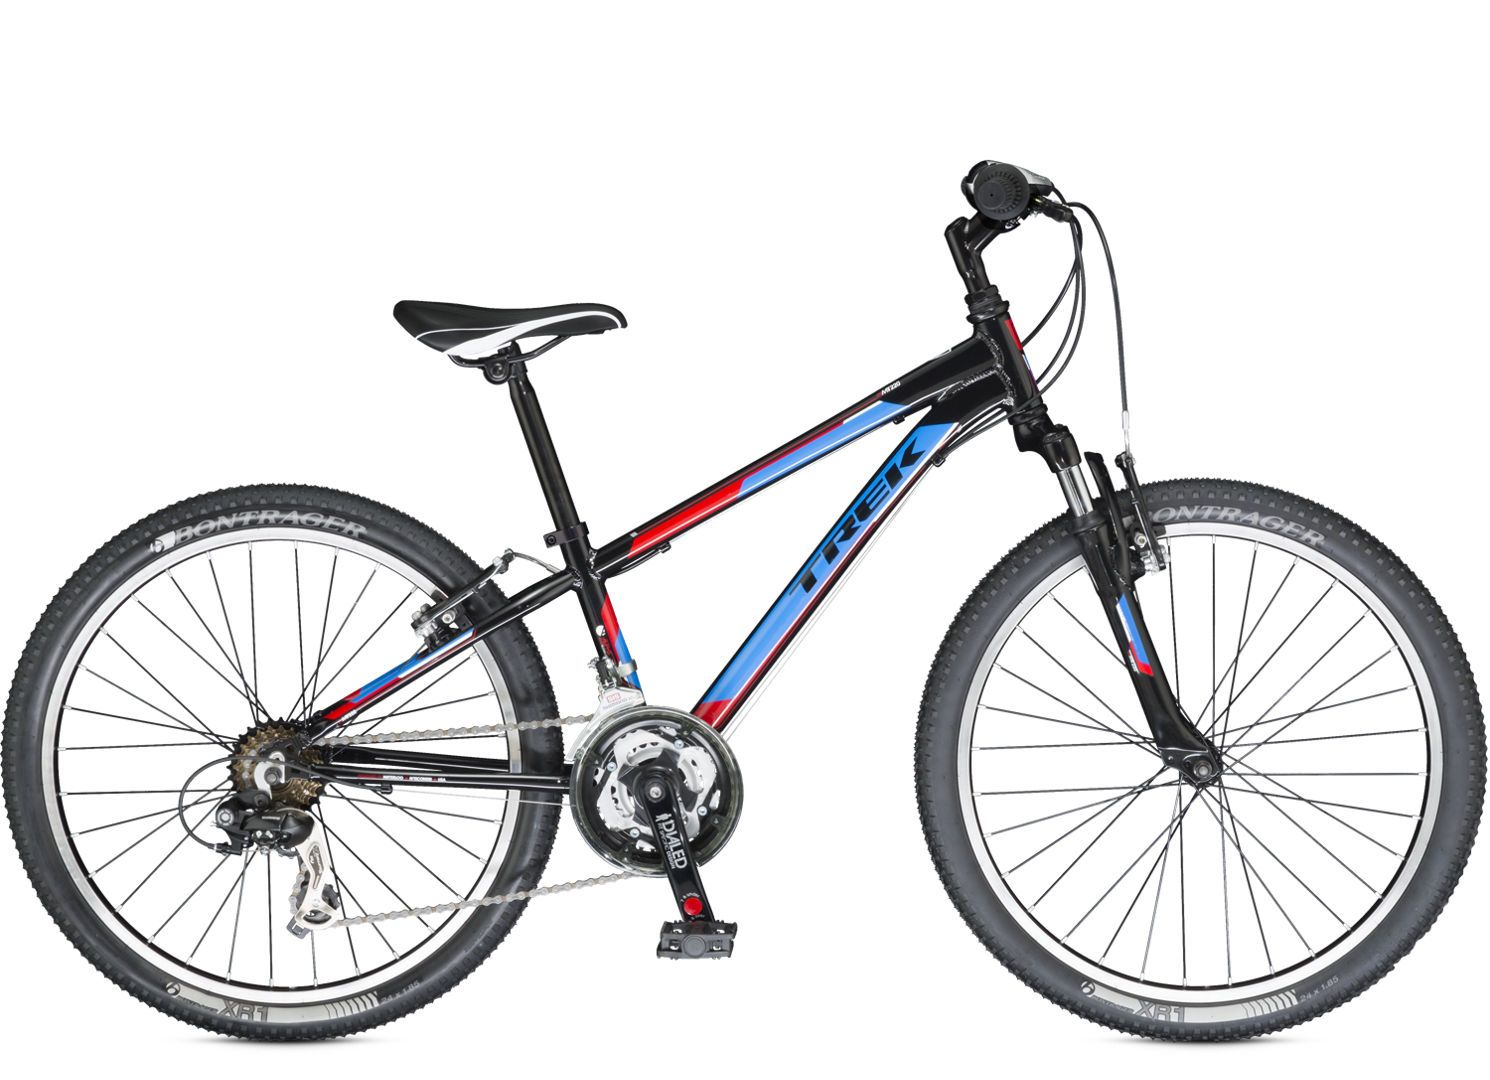 Mt 220 Boy S Trek Bicycle Trek Bicycle Cross Country Mountain Bike Trek Bikes